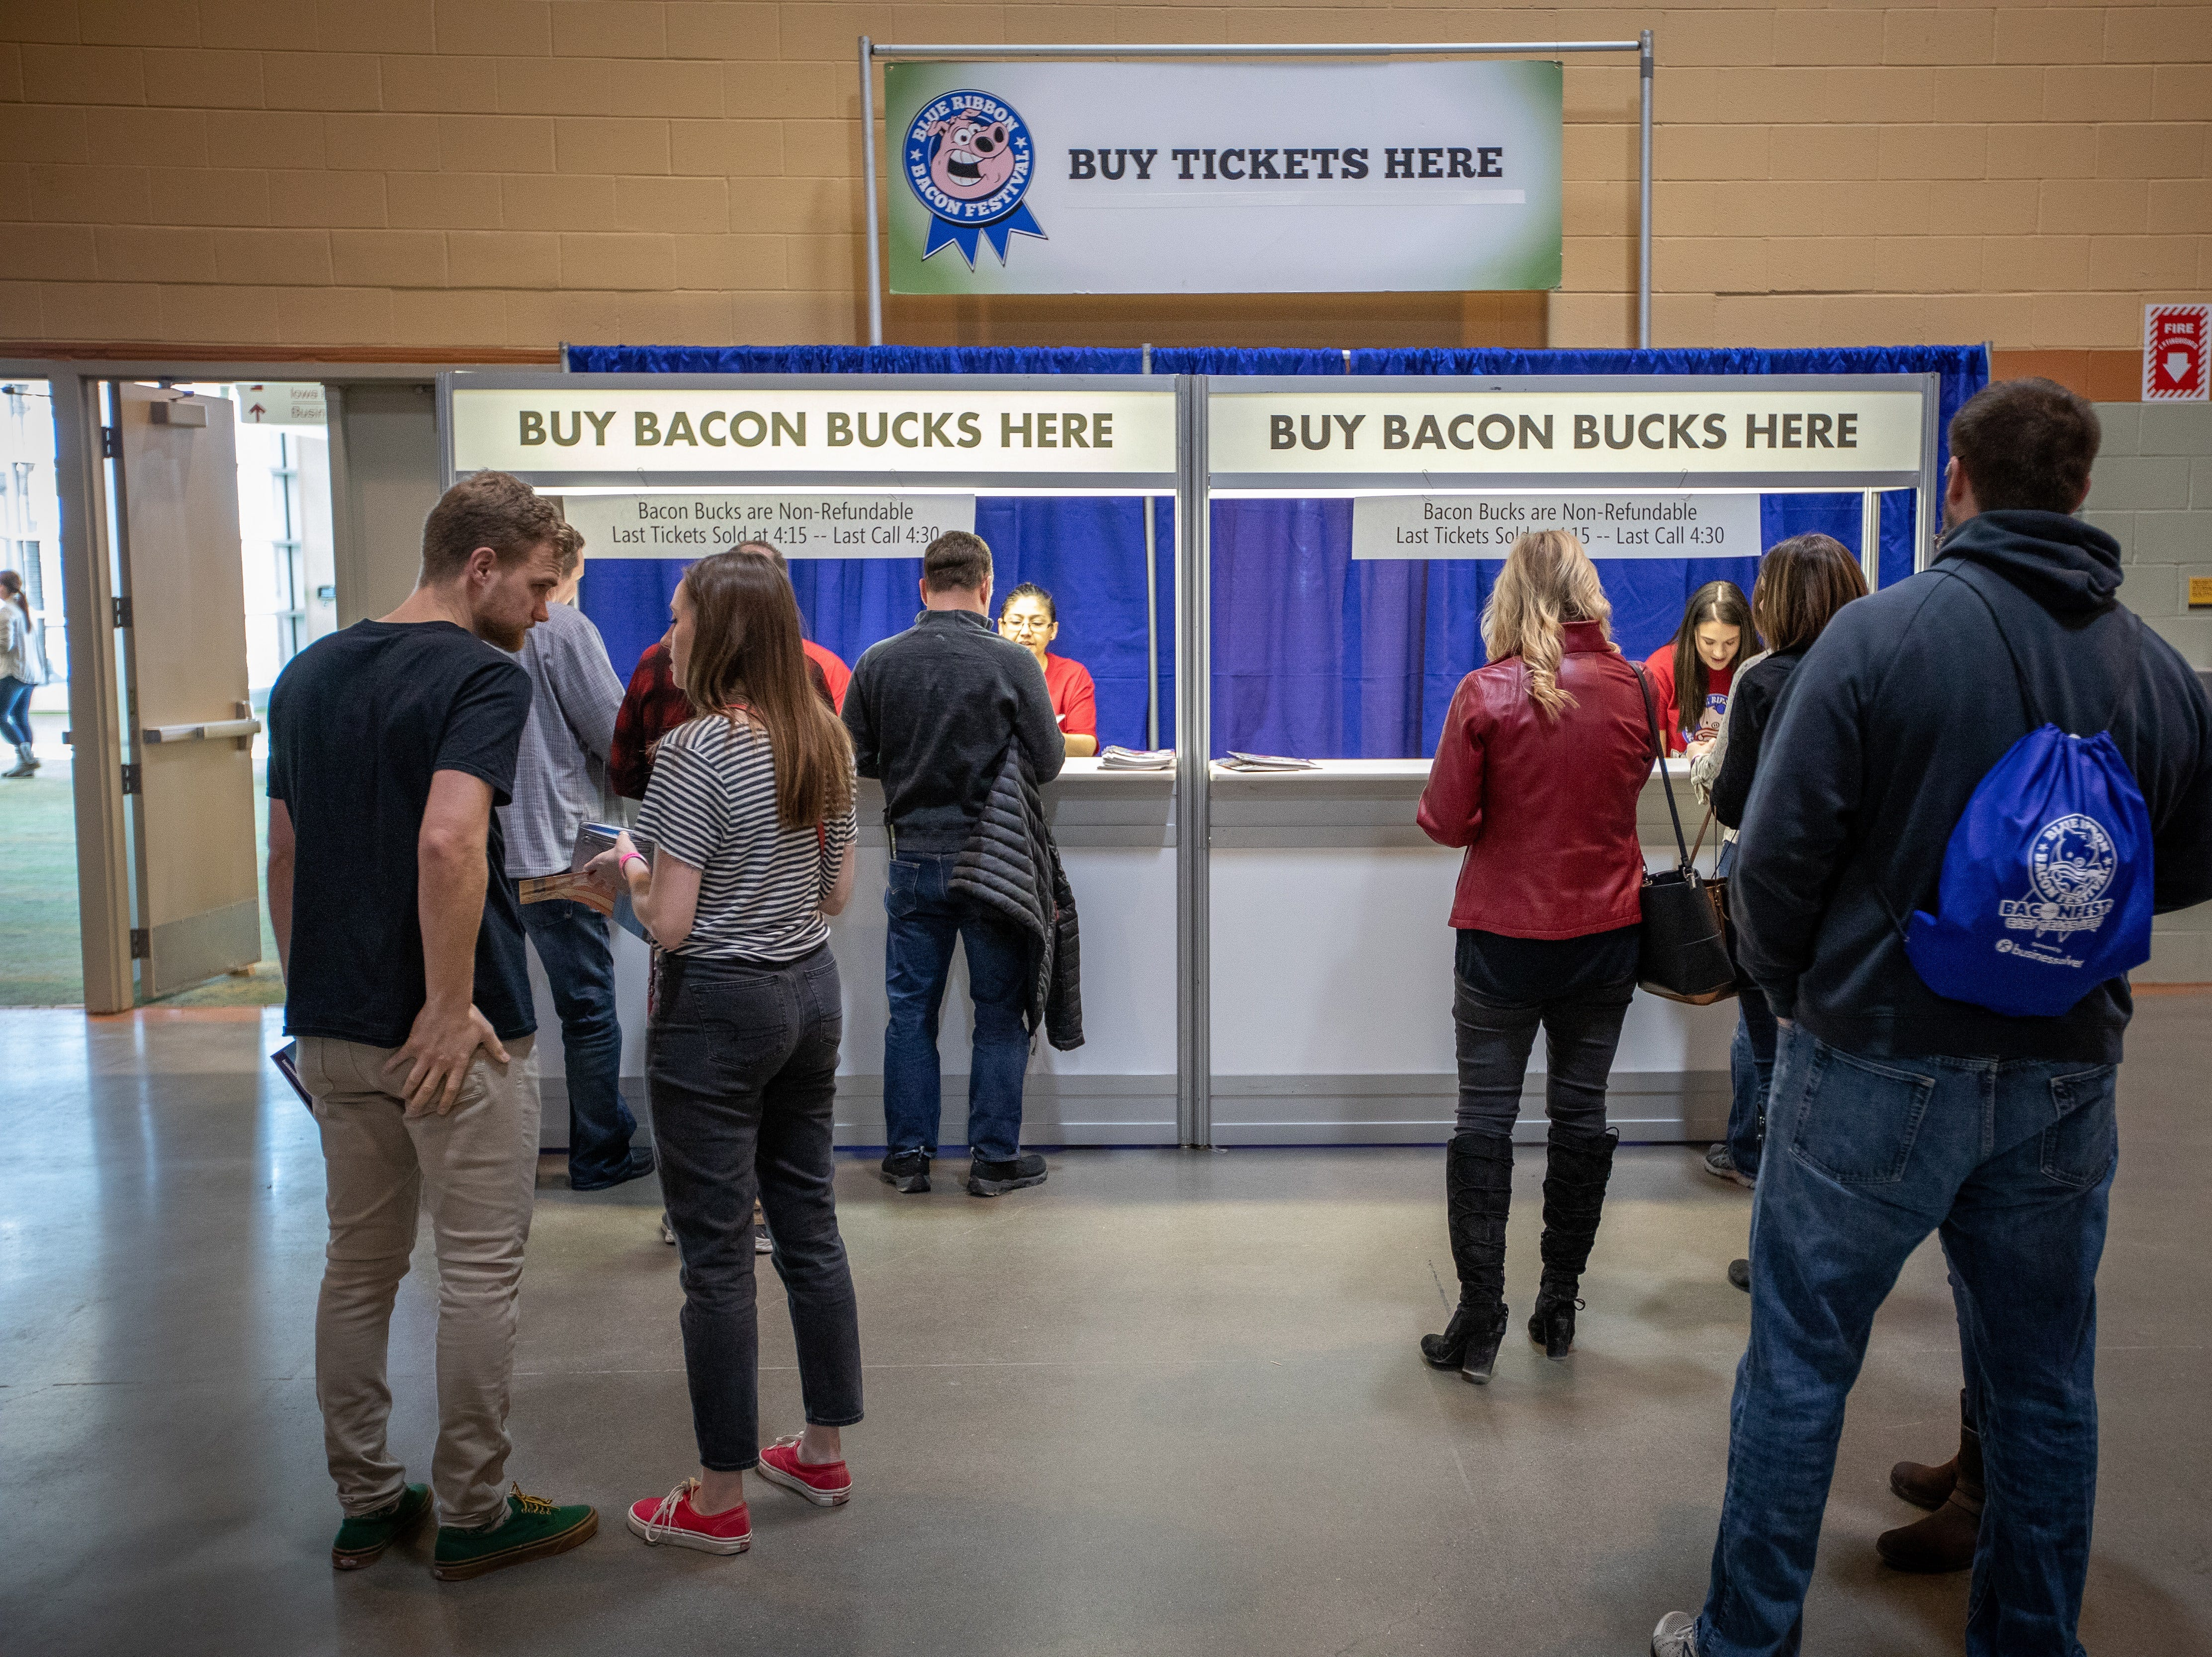 Patrons line up to buy Bacon Bucks during the Bacon Fest at Hy-Vee Hall on Feb. 16, 2019 in Des Moines, Iowa.